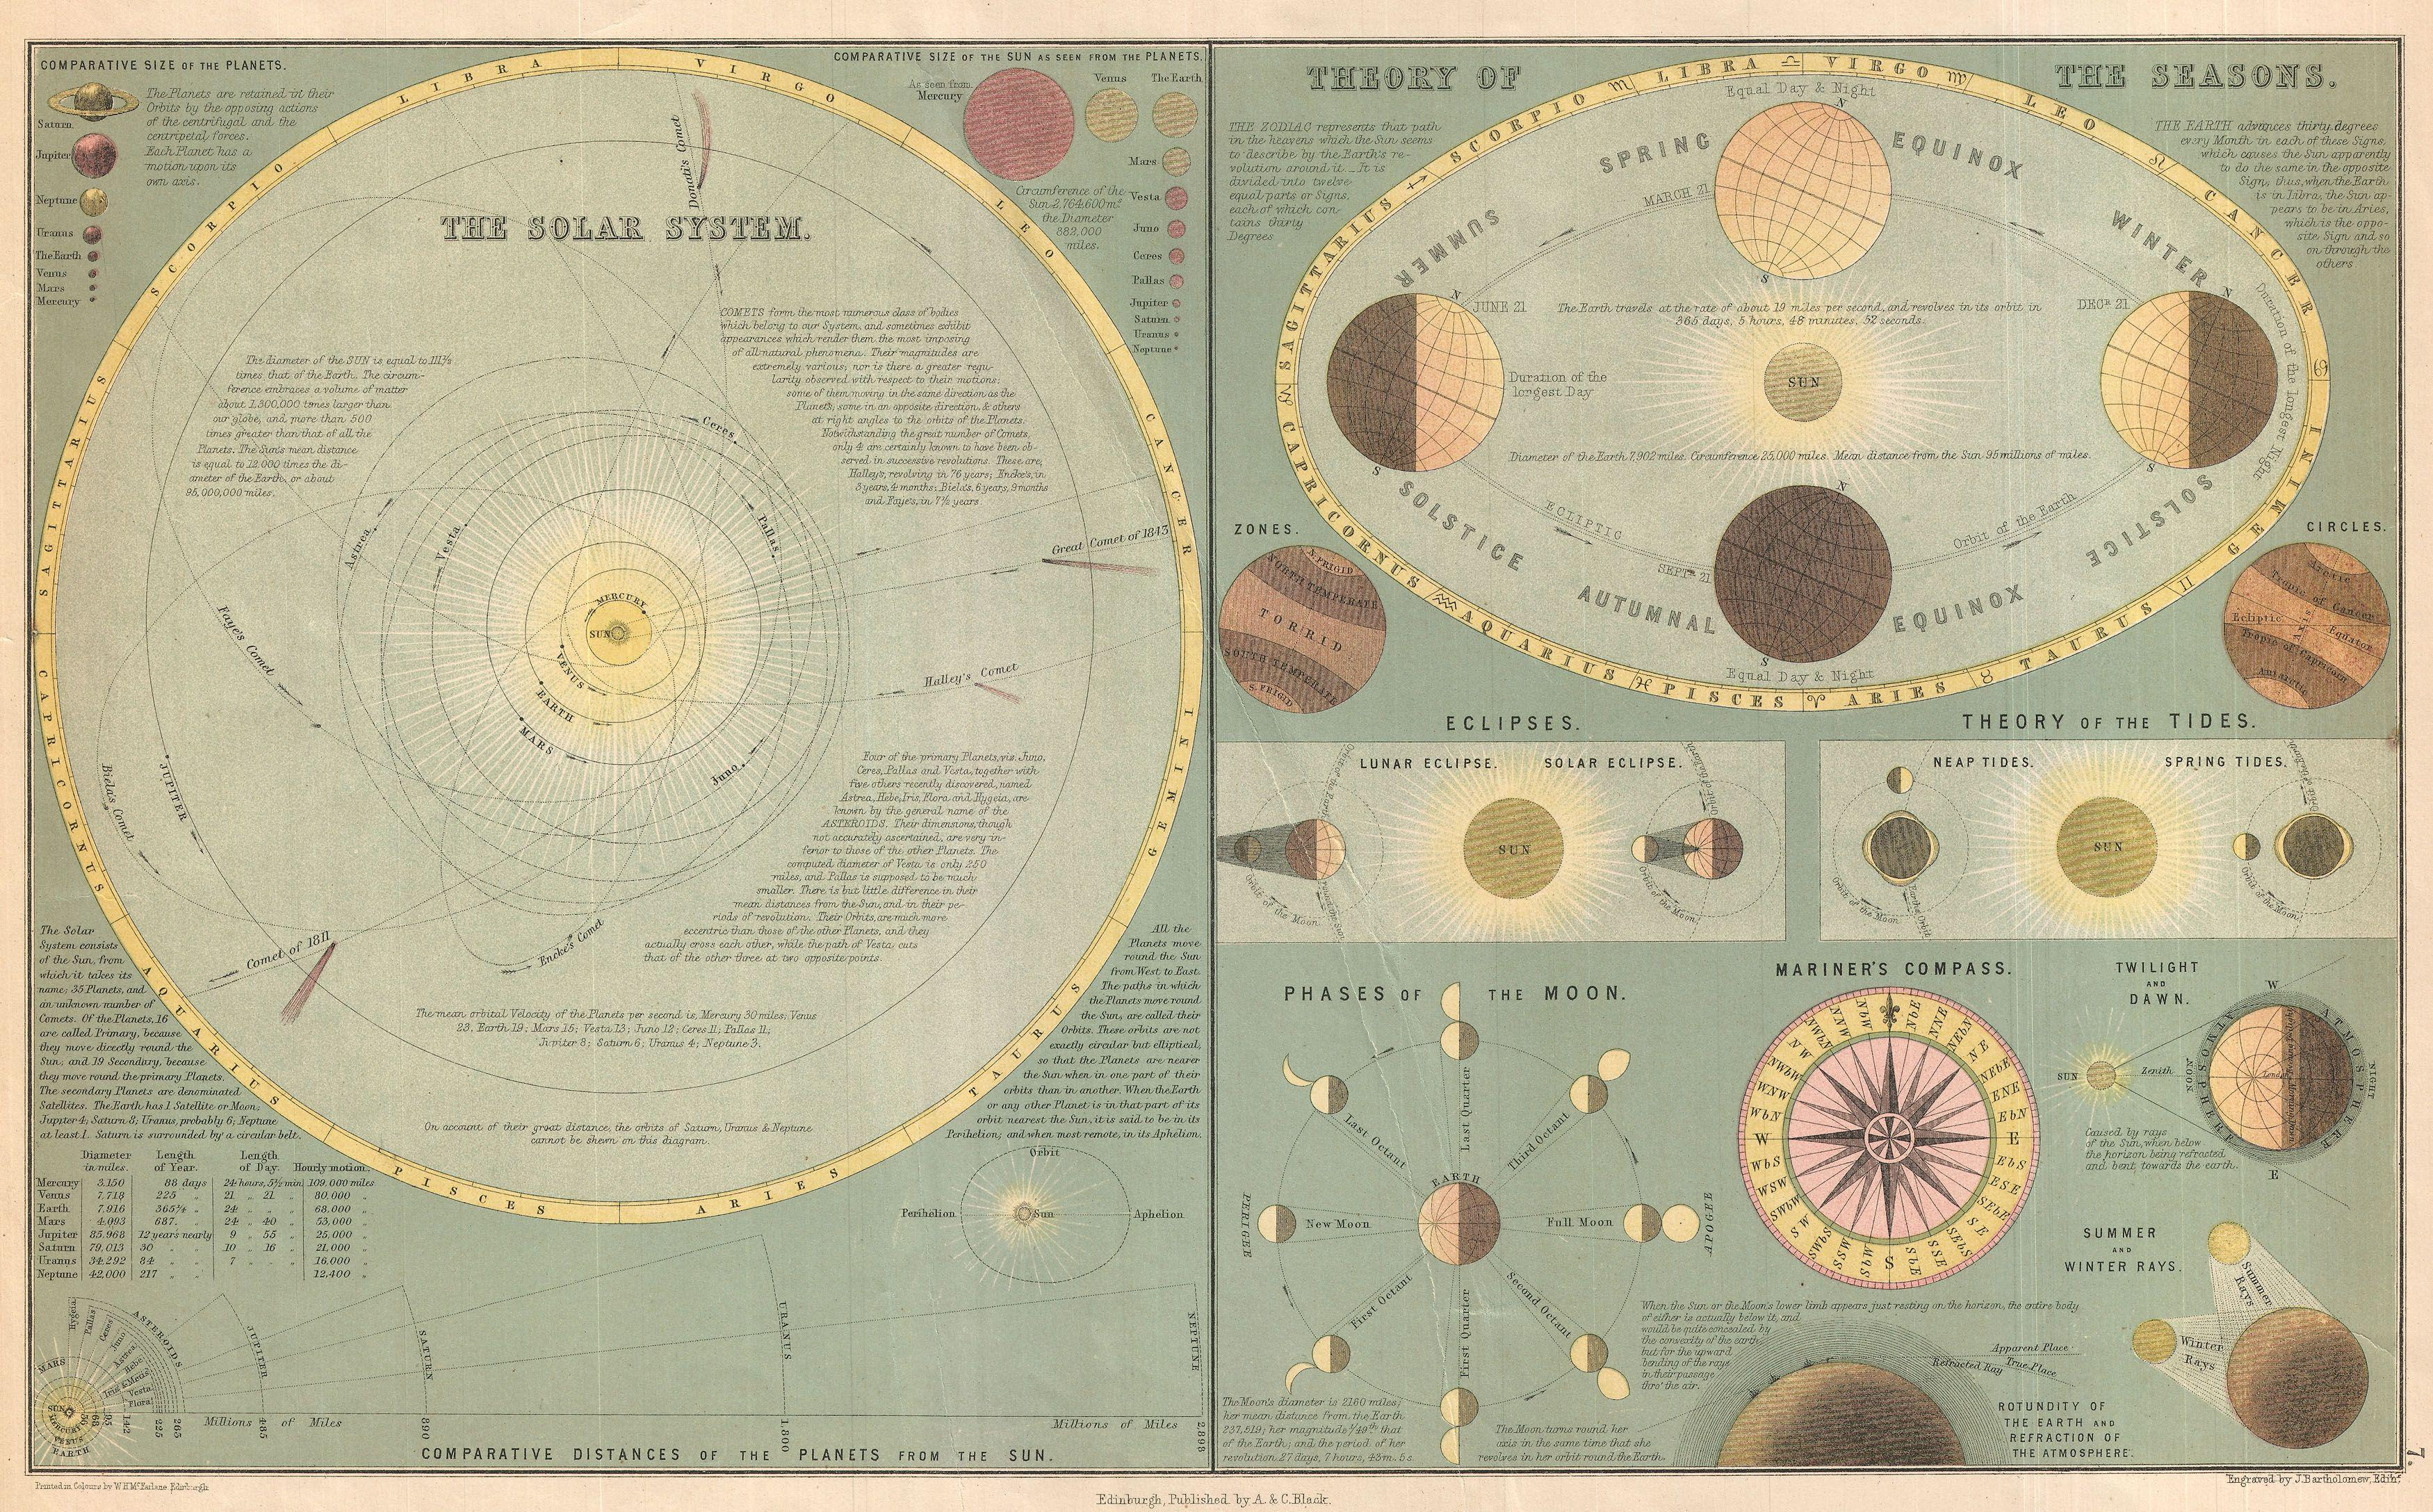 Moon Chart: 1873 A. and C. Black Map or Chart of the Solar System ,Chart